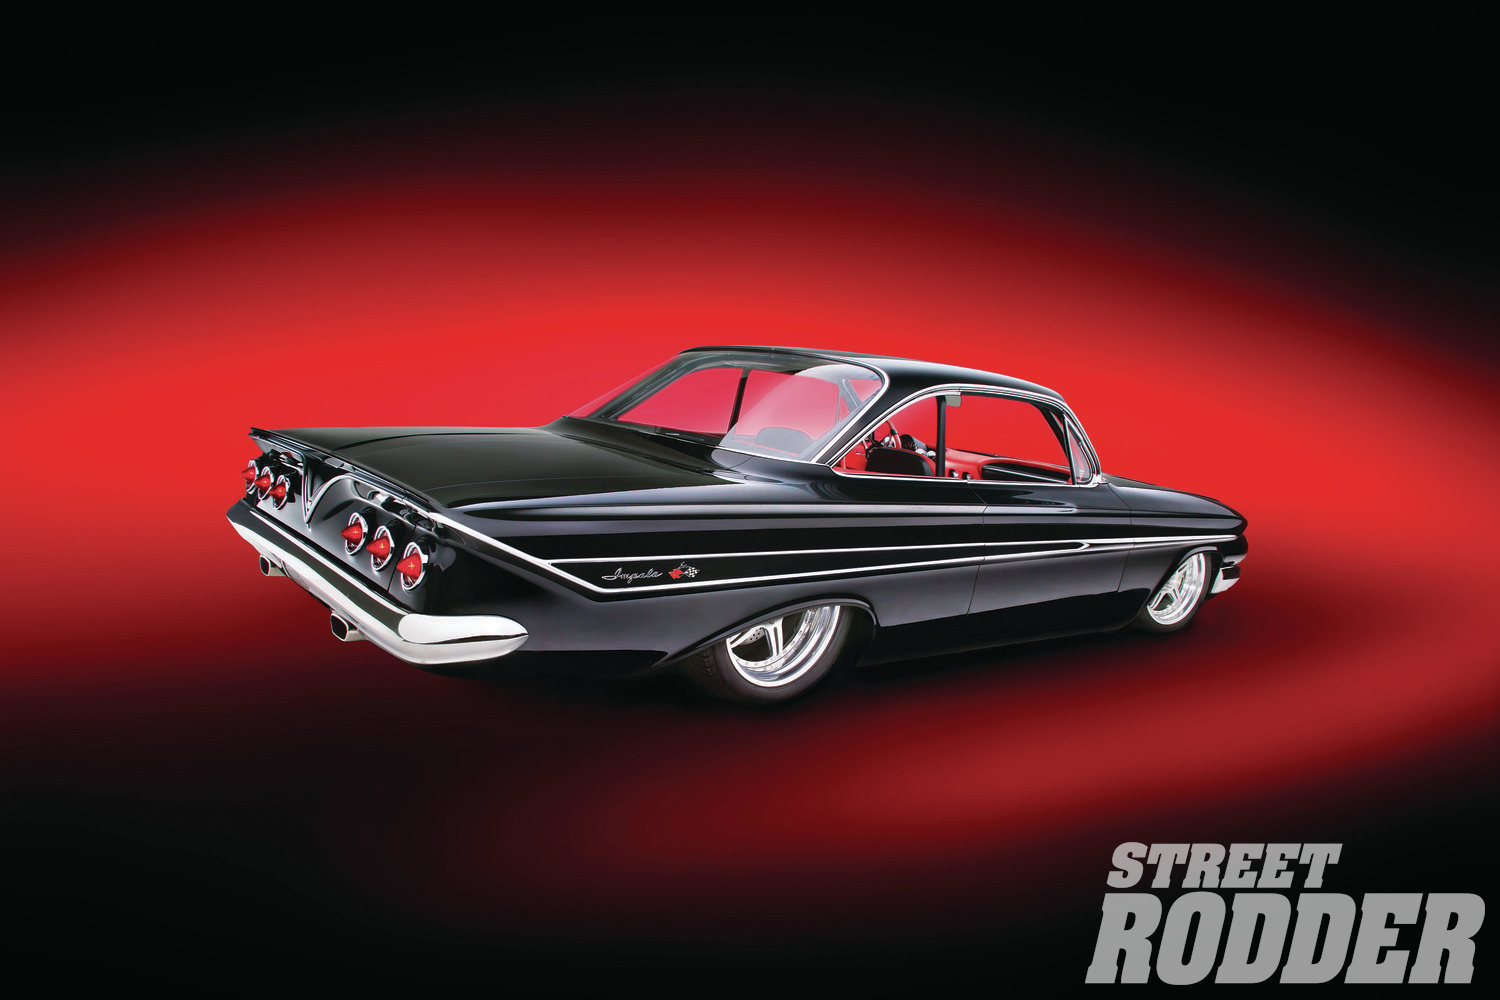 Following illustrations by Alan Childers, Steve Cook Creations fab'd the center console and added the '59 Chevy dash to the interior. The gauge pod in made of graphite (with Dakota Digital providing the custom gauges) and Billet Specialties carved the one-off steering wheel.The black and red leather was expertly stitched and installed by Gabe Lopez's Street Rod Custom Interiors after they reworked the Cerullo bucket seats and built the car's rear bench seating. Their work is so good you hardly notice the car's rollcage.